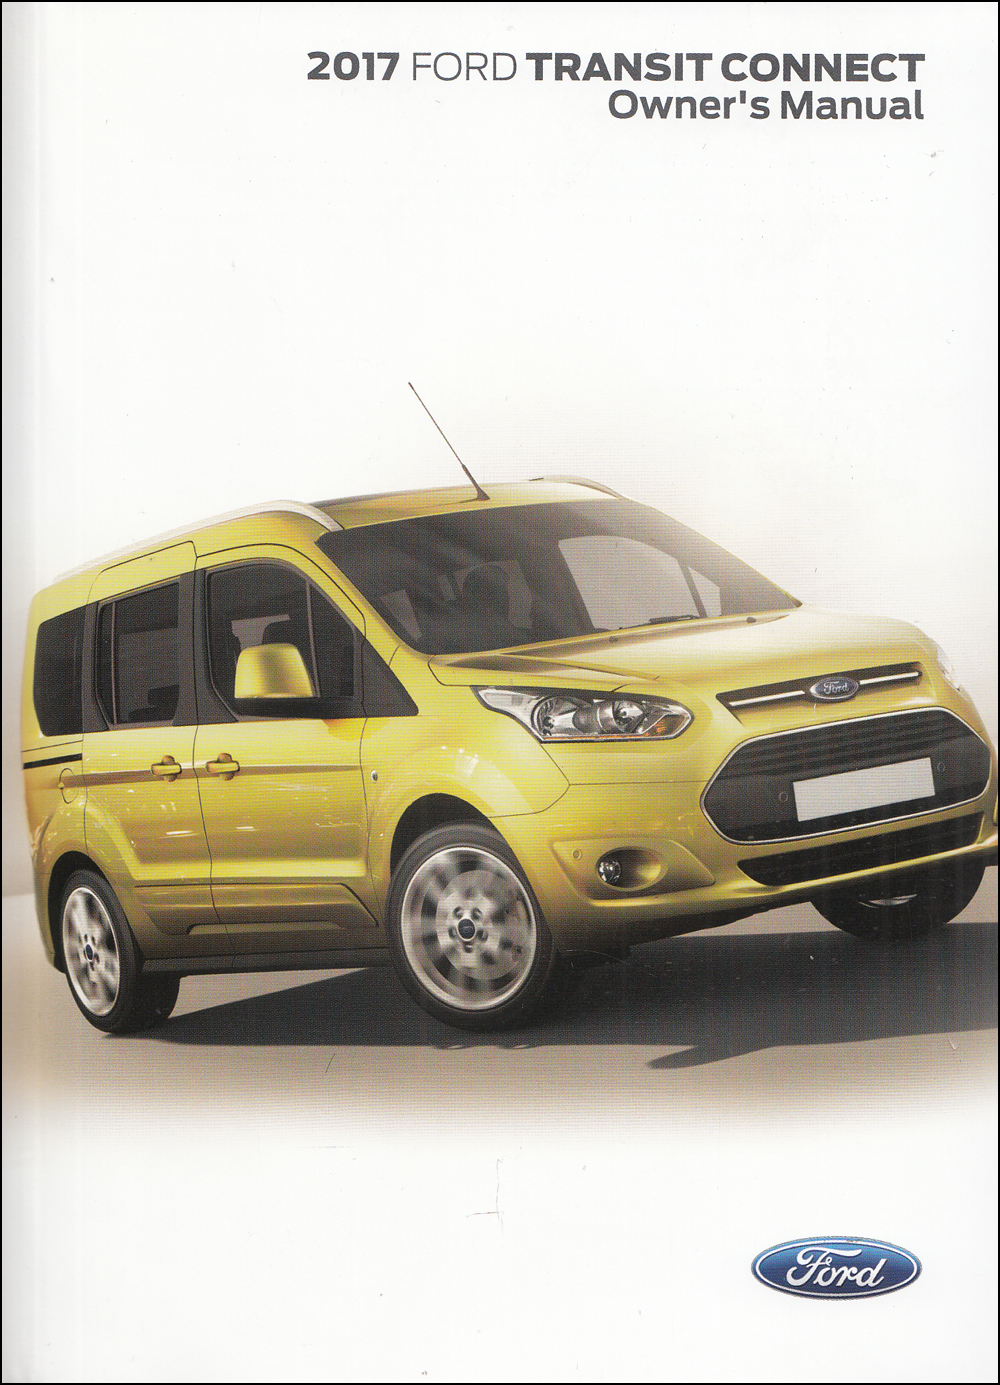 2017 Ford Transit Connect Owner's Manual Original